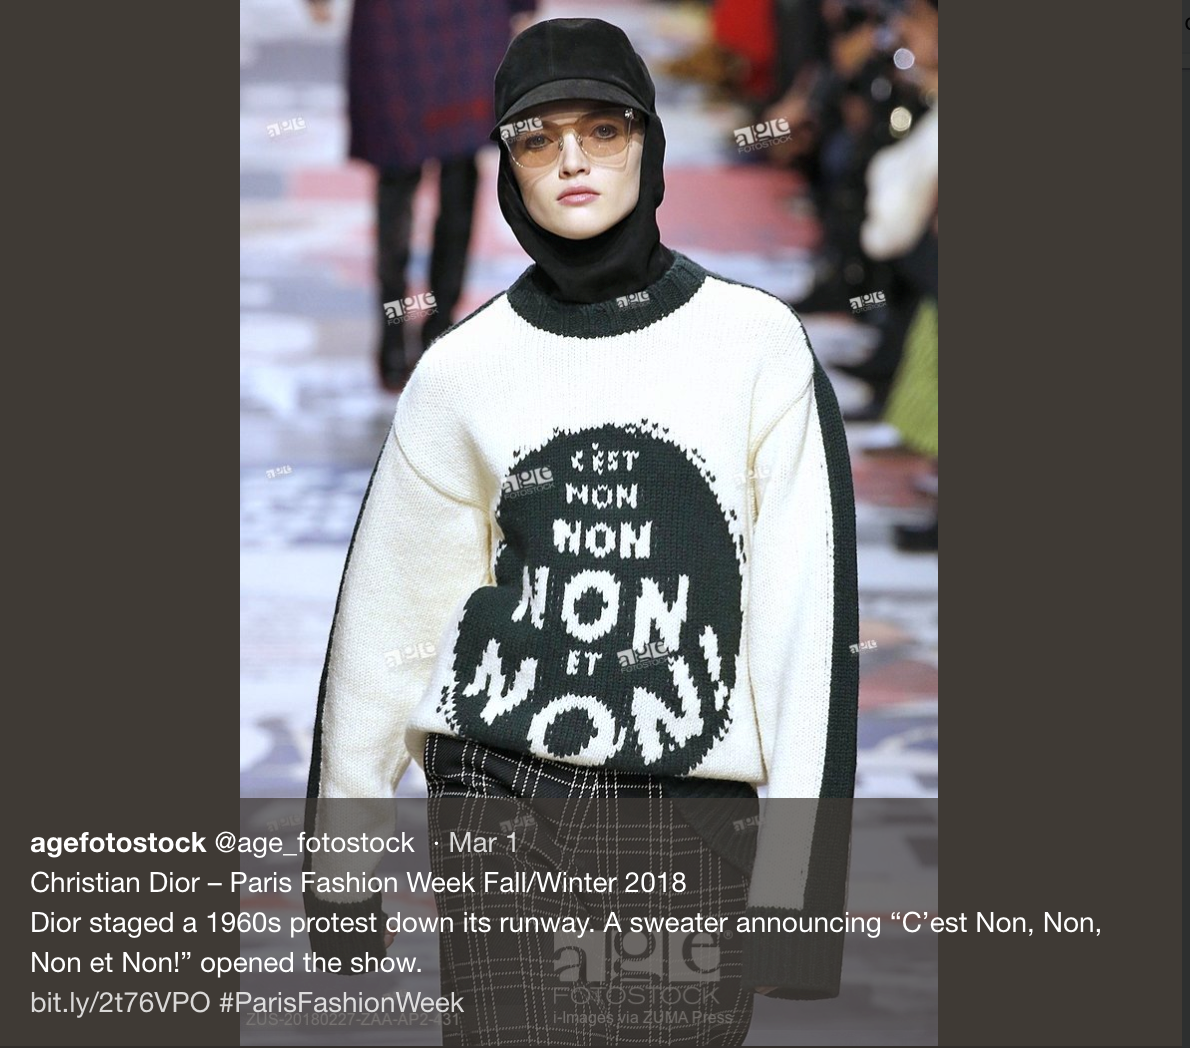 "A tweet showing a model at Dior's fashion show wearing a sweater that reads ""C'est Non, Non, Non et Non!"""